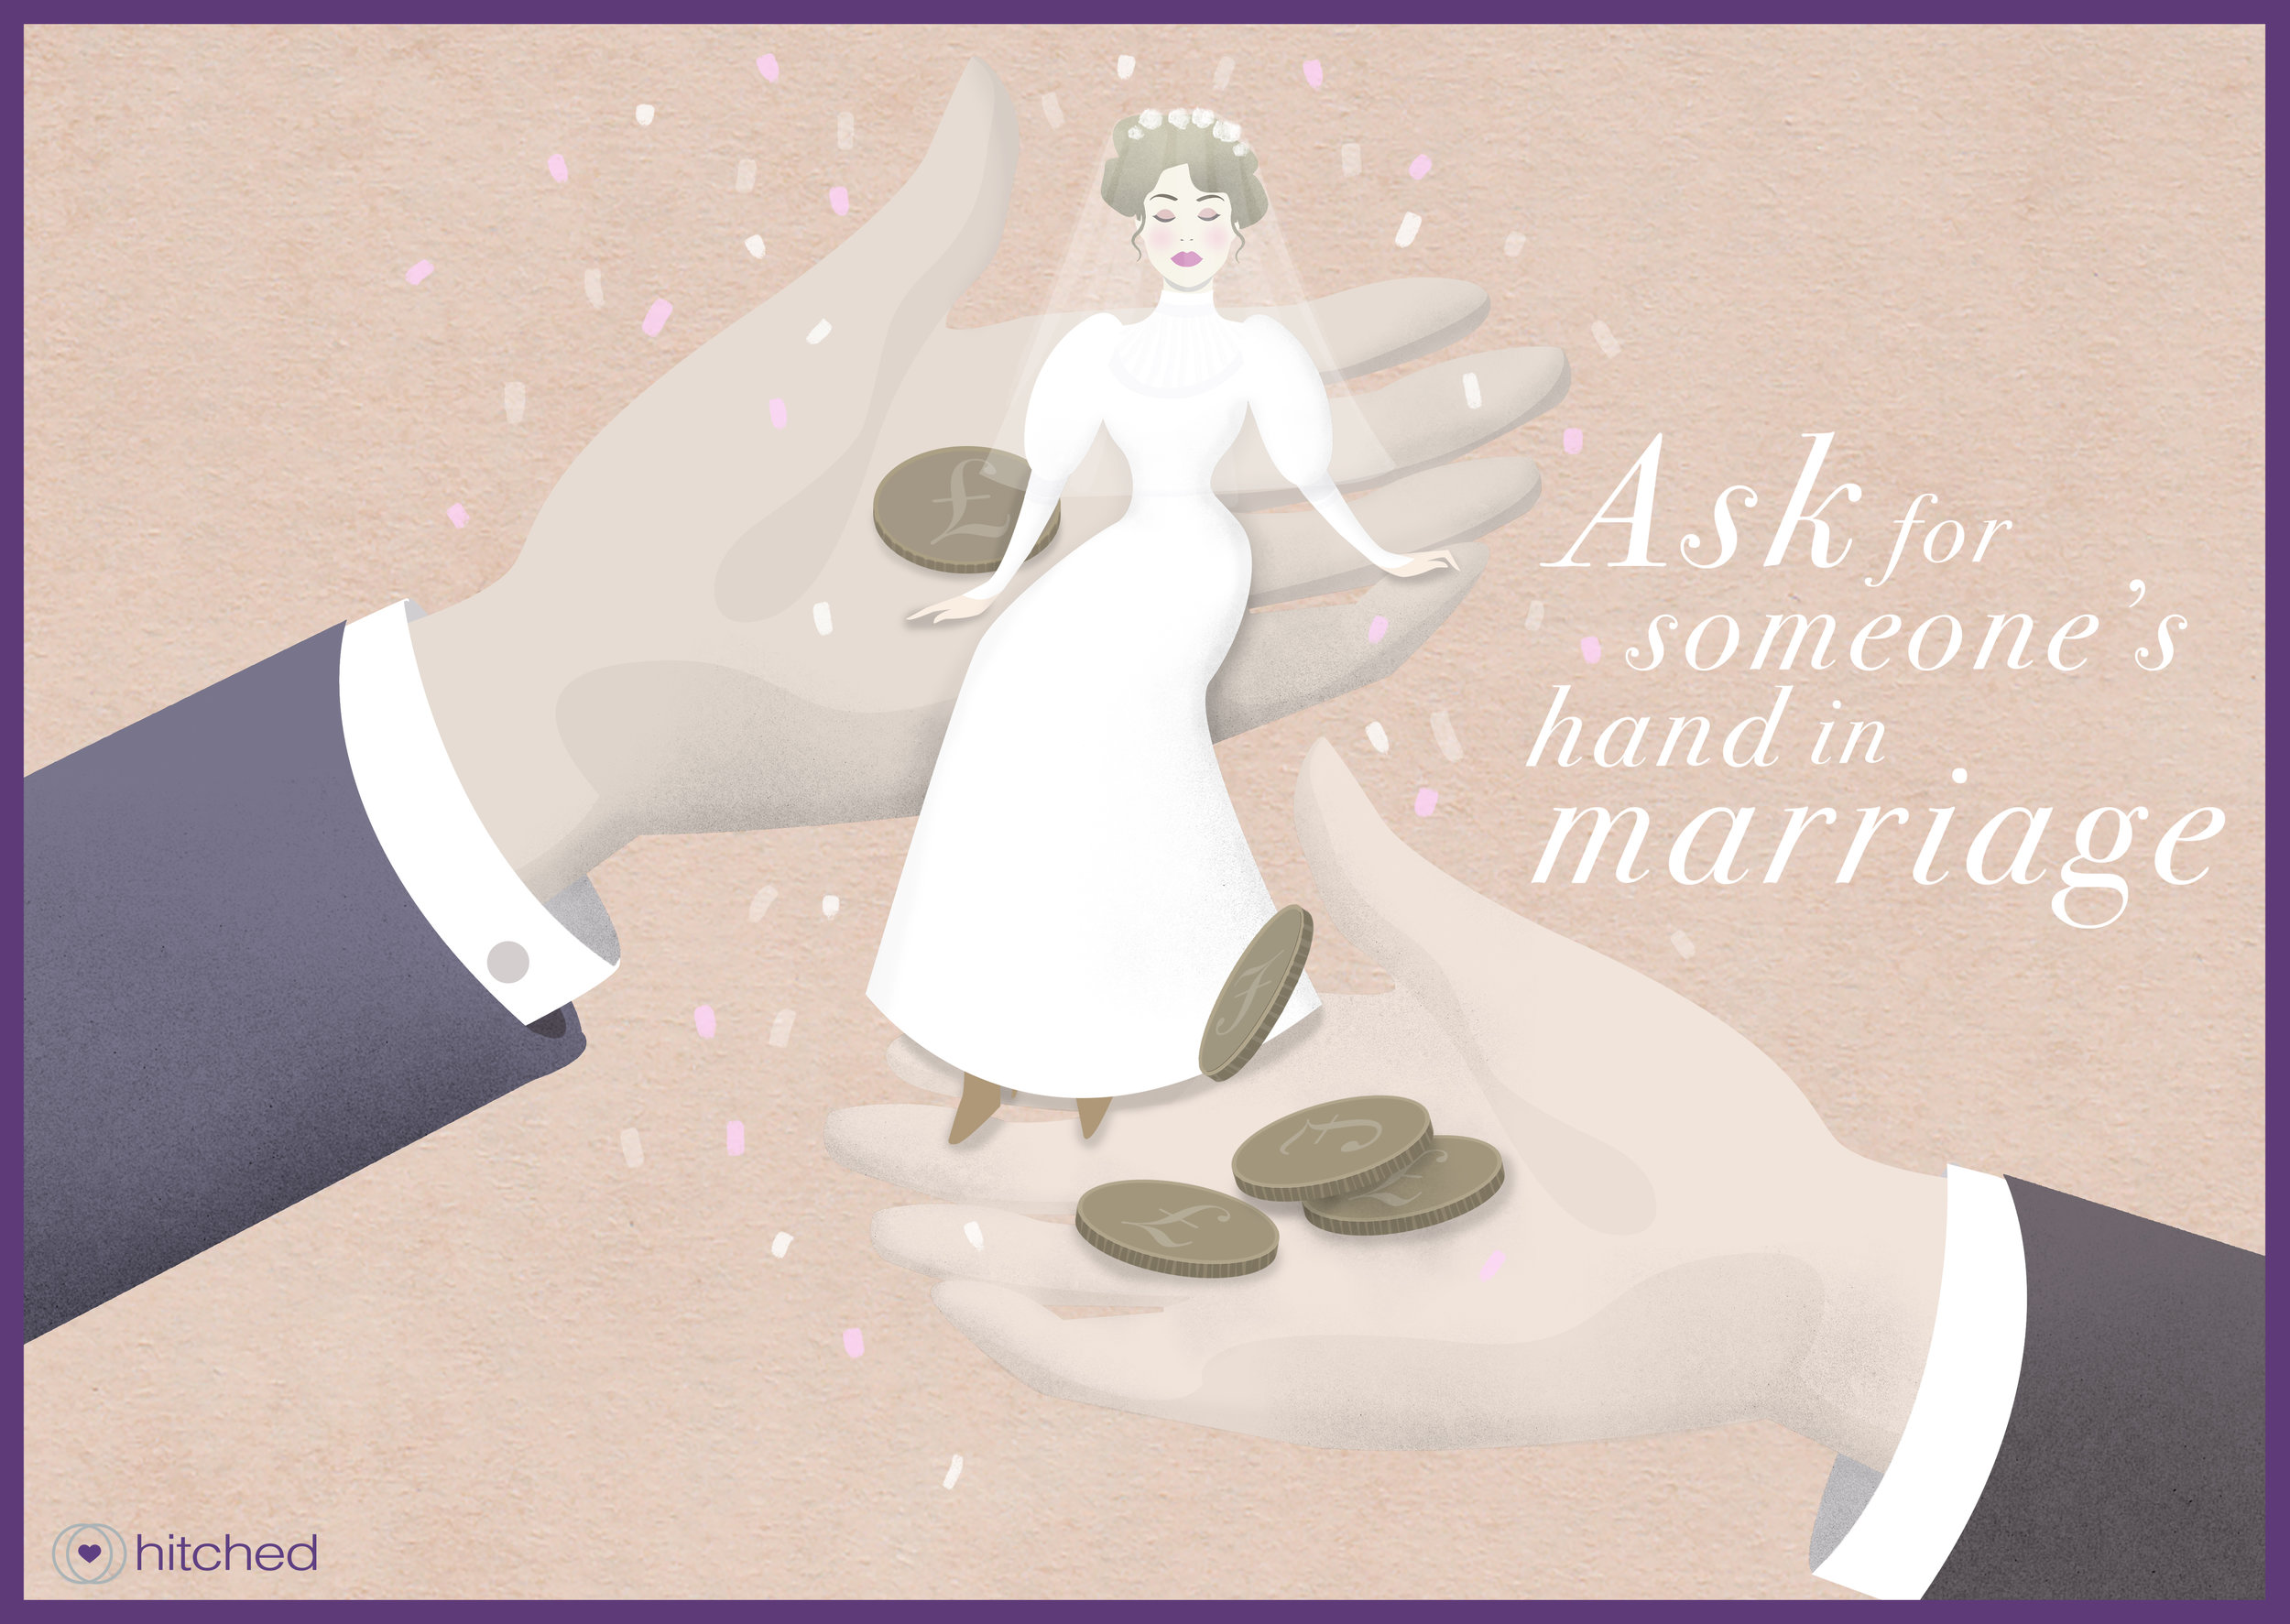 Ask for someone's hand in marriage.jpg